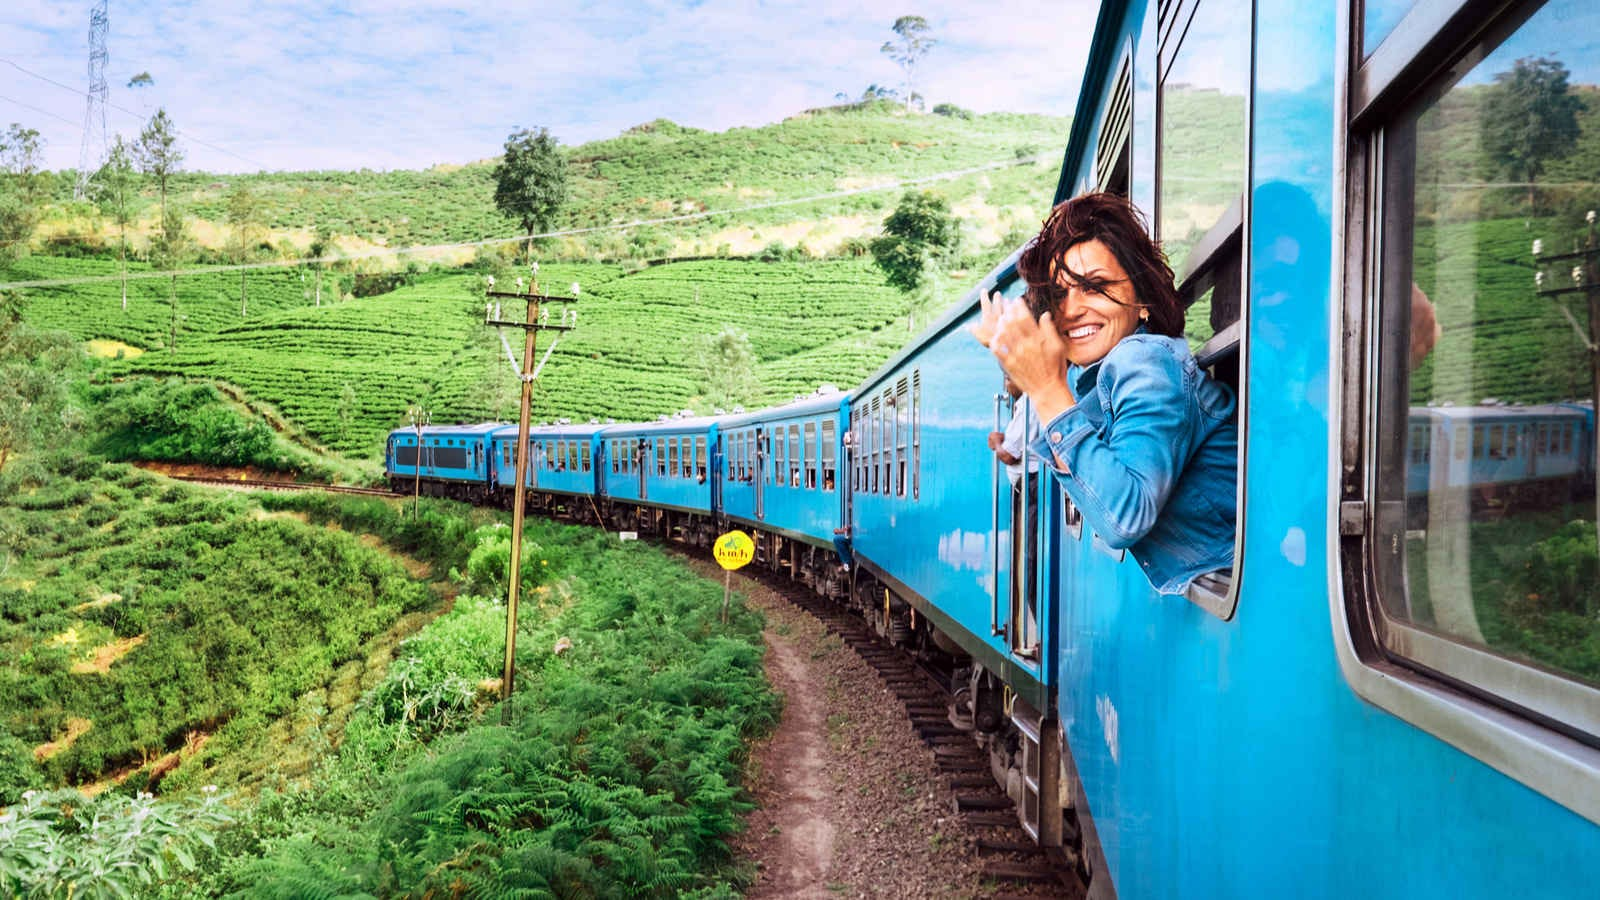 woman leaning out the window of a train, smiling